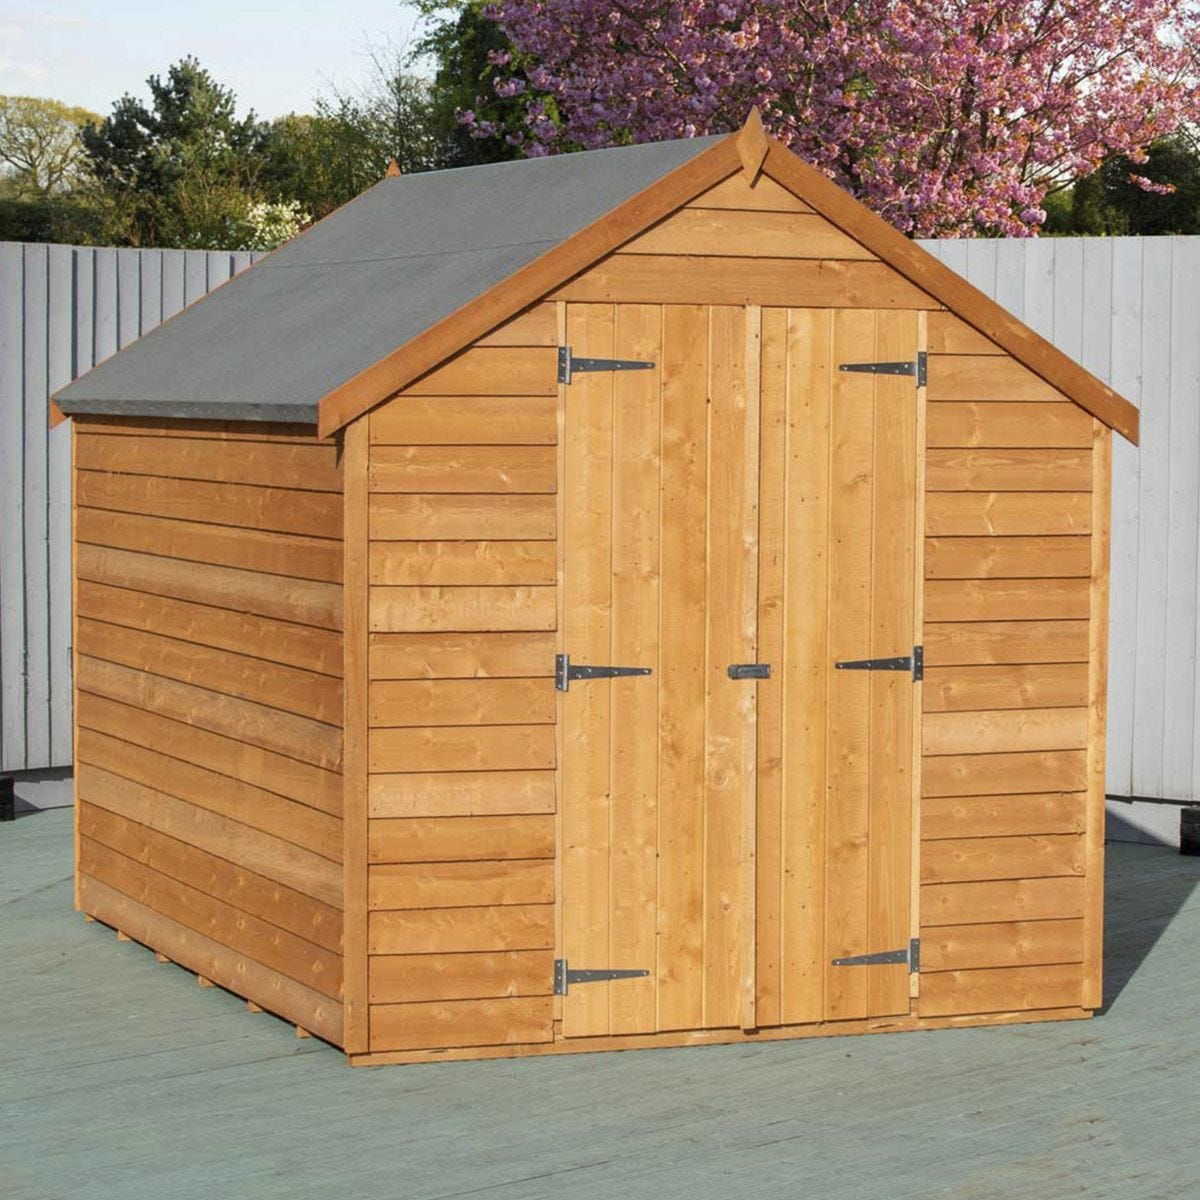 Shire Overlap 8' x 6' Value Shed with double doors